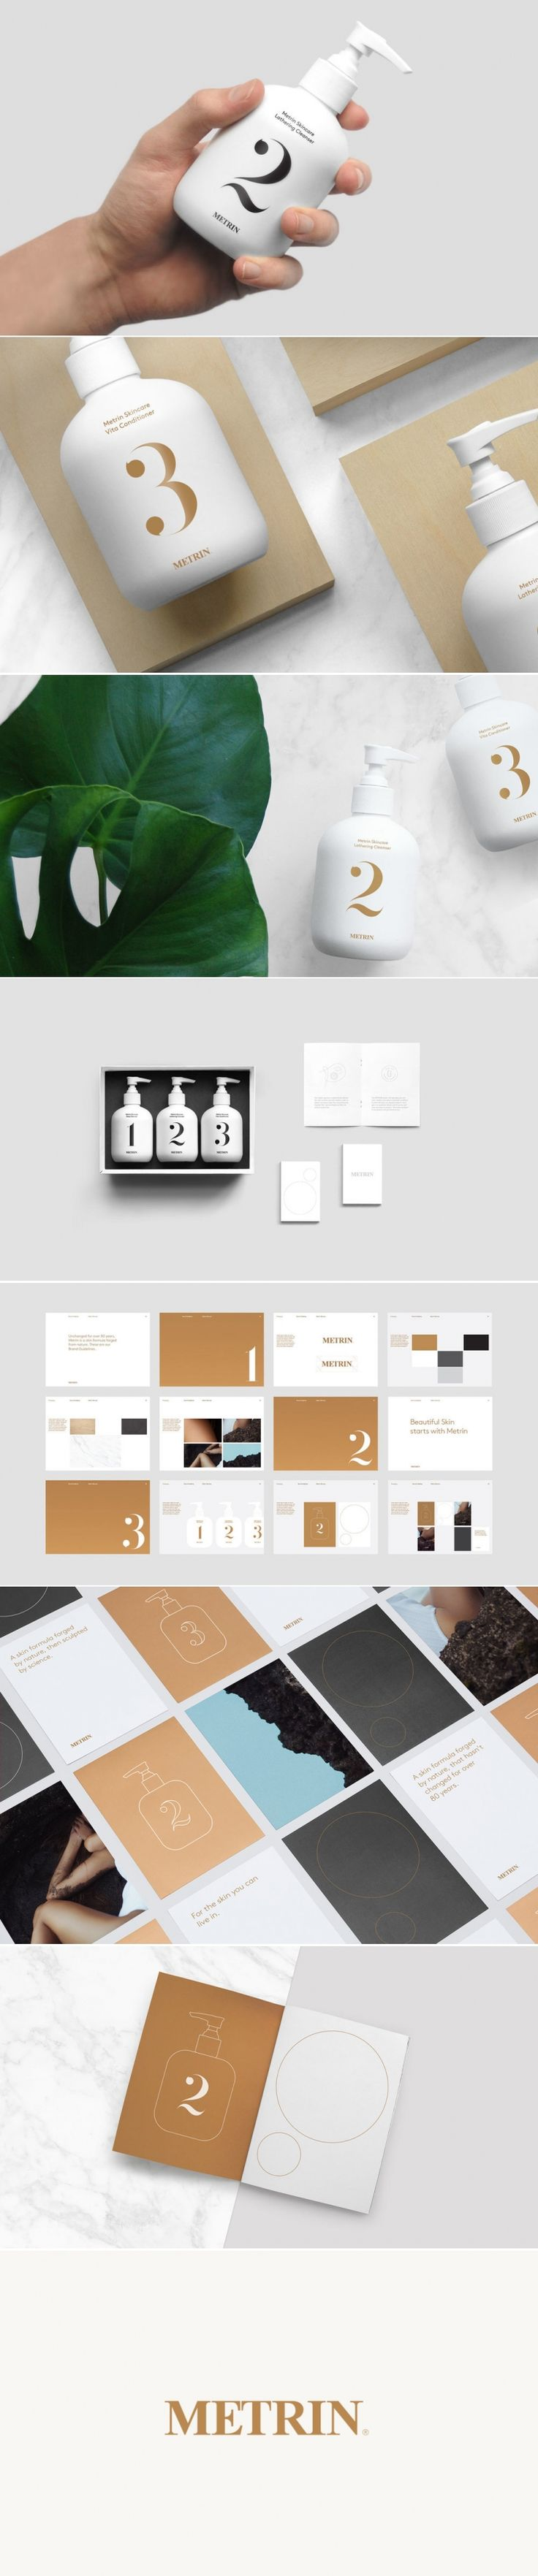 Metrin's Beautiful Minimalistic Skincare Packaging — The Dieline | Packaging & Branding Design & Innovation News